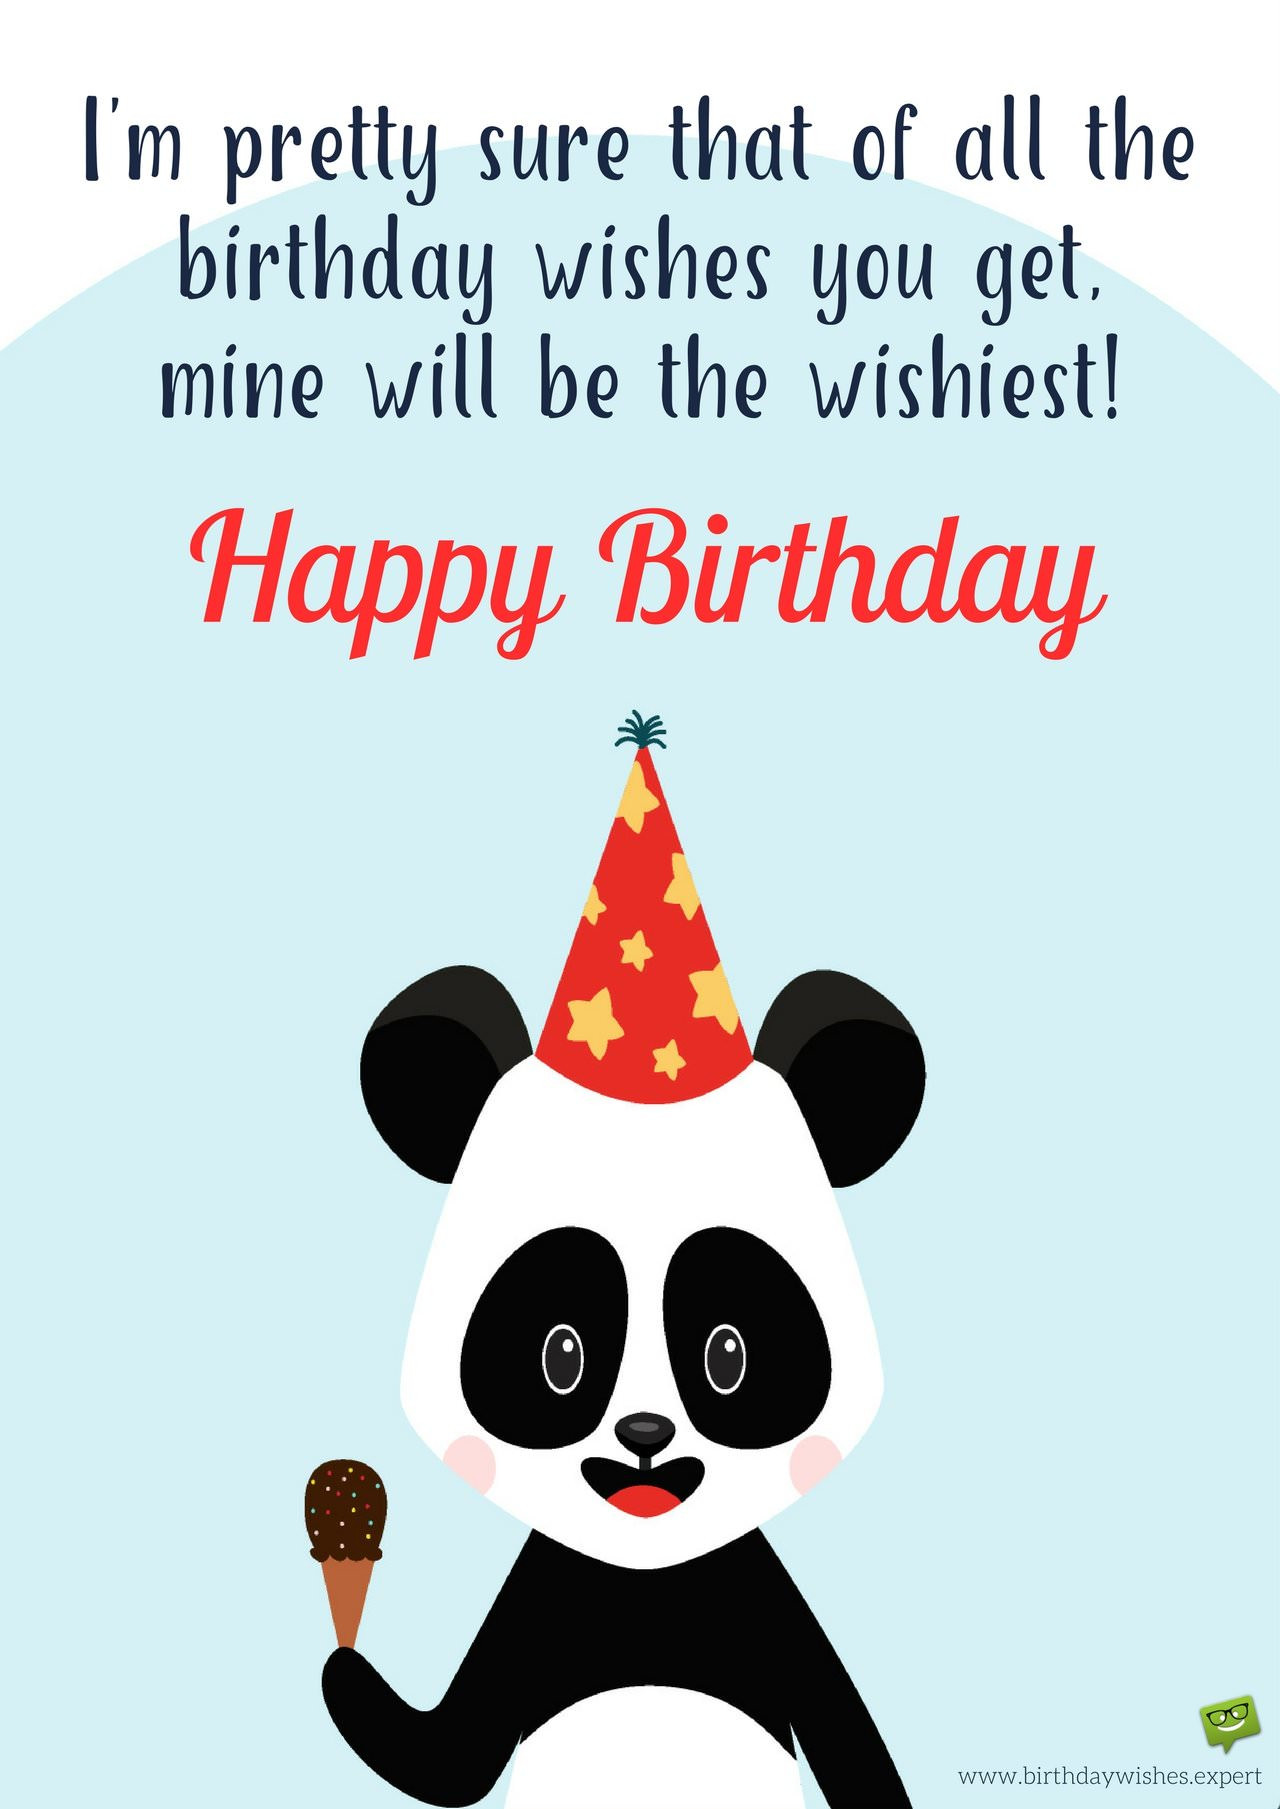 Best ideas about Humorous Birthday Wishes . Save or Pin The Funniest Wishes to Make your Wife Smile on her Birthday Now.